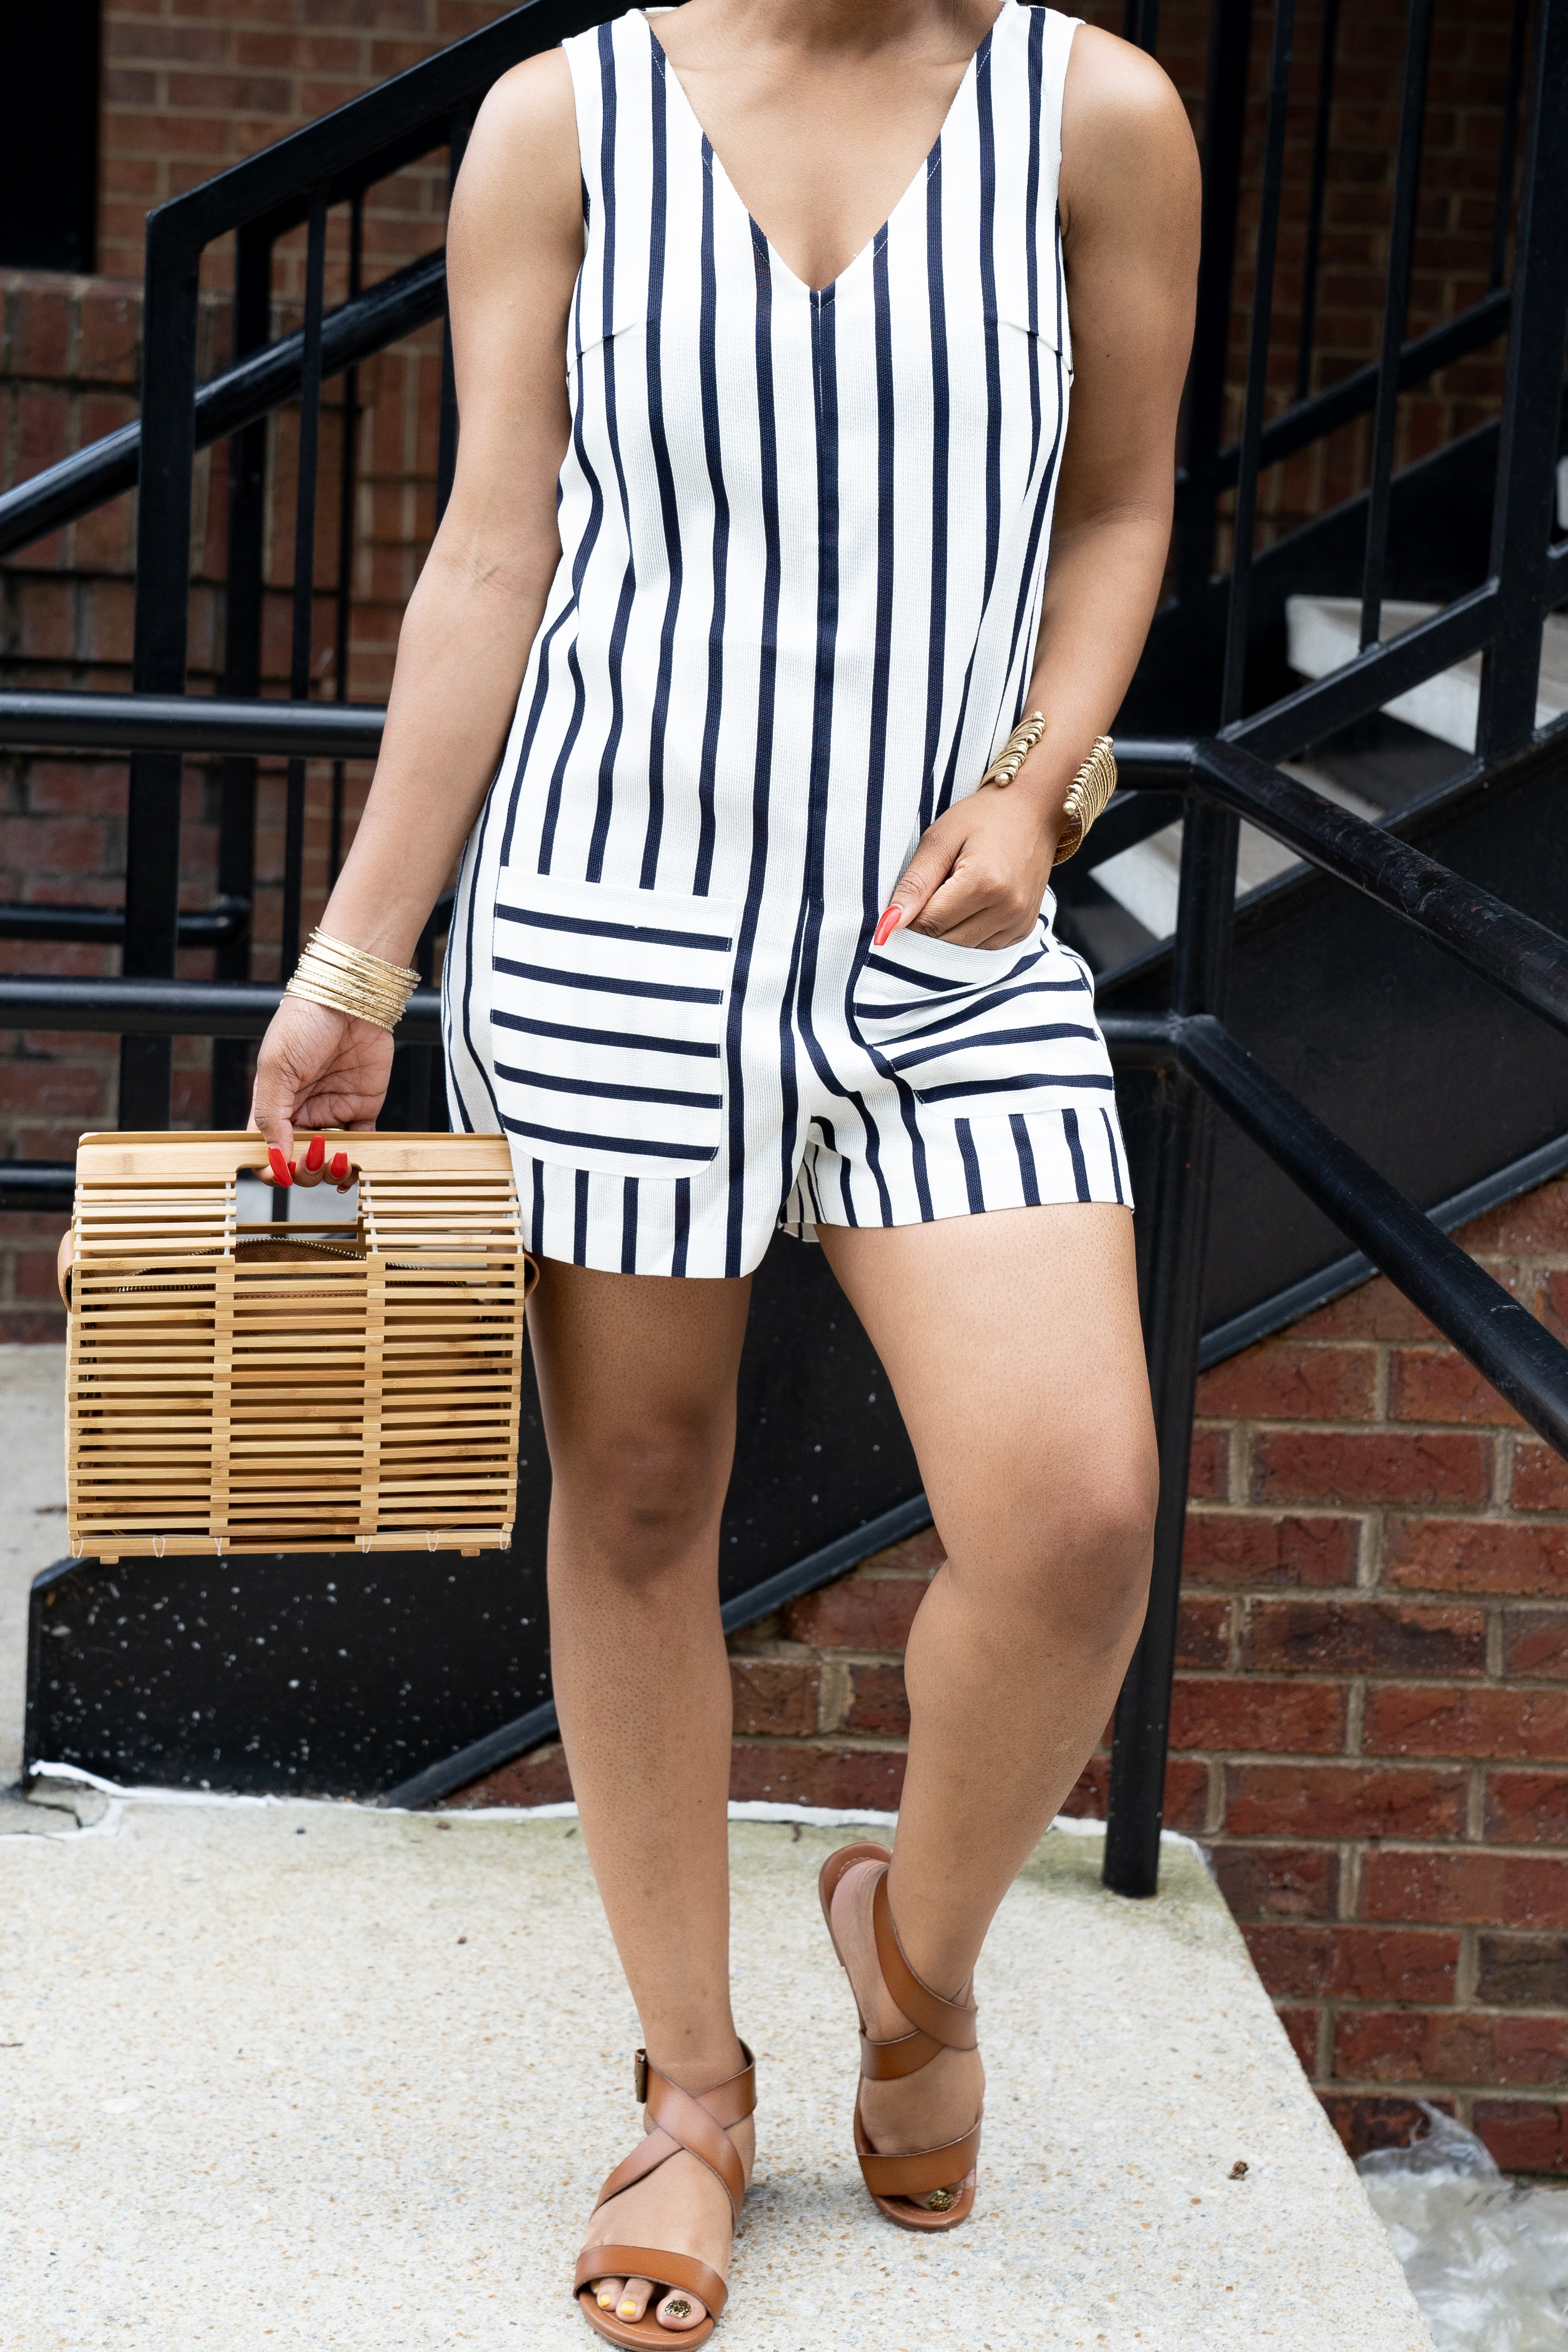 Anays Striped Romper - BLANK Wardrobe